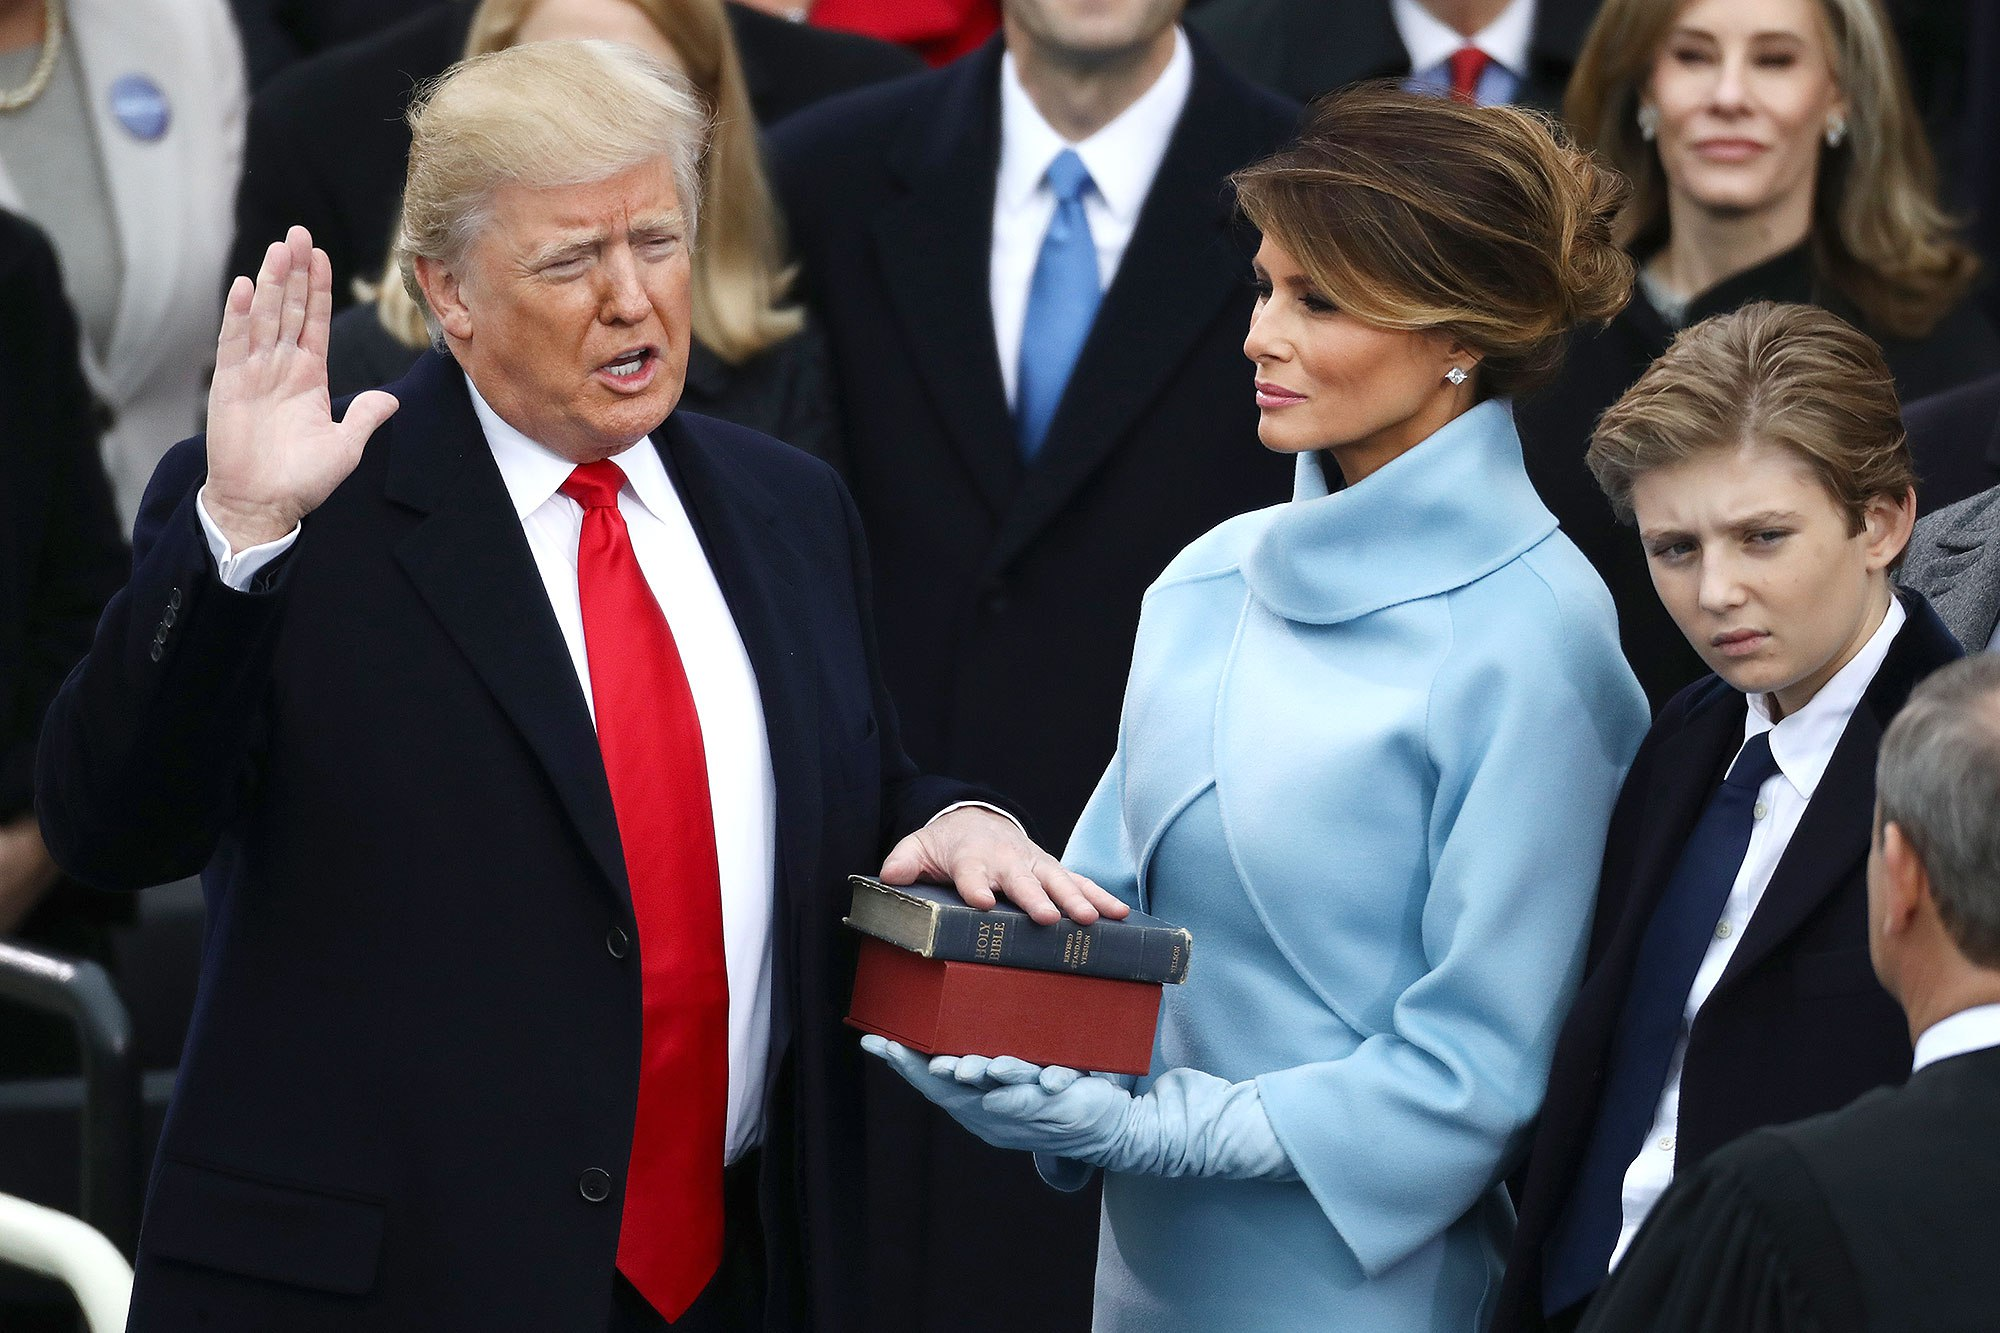 donald trump16 - Donald Trump Sworn In as 45th President of the United States